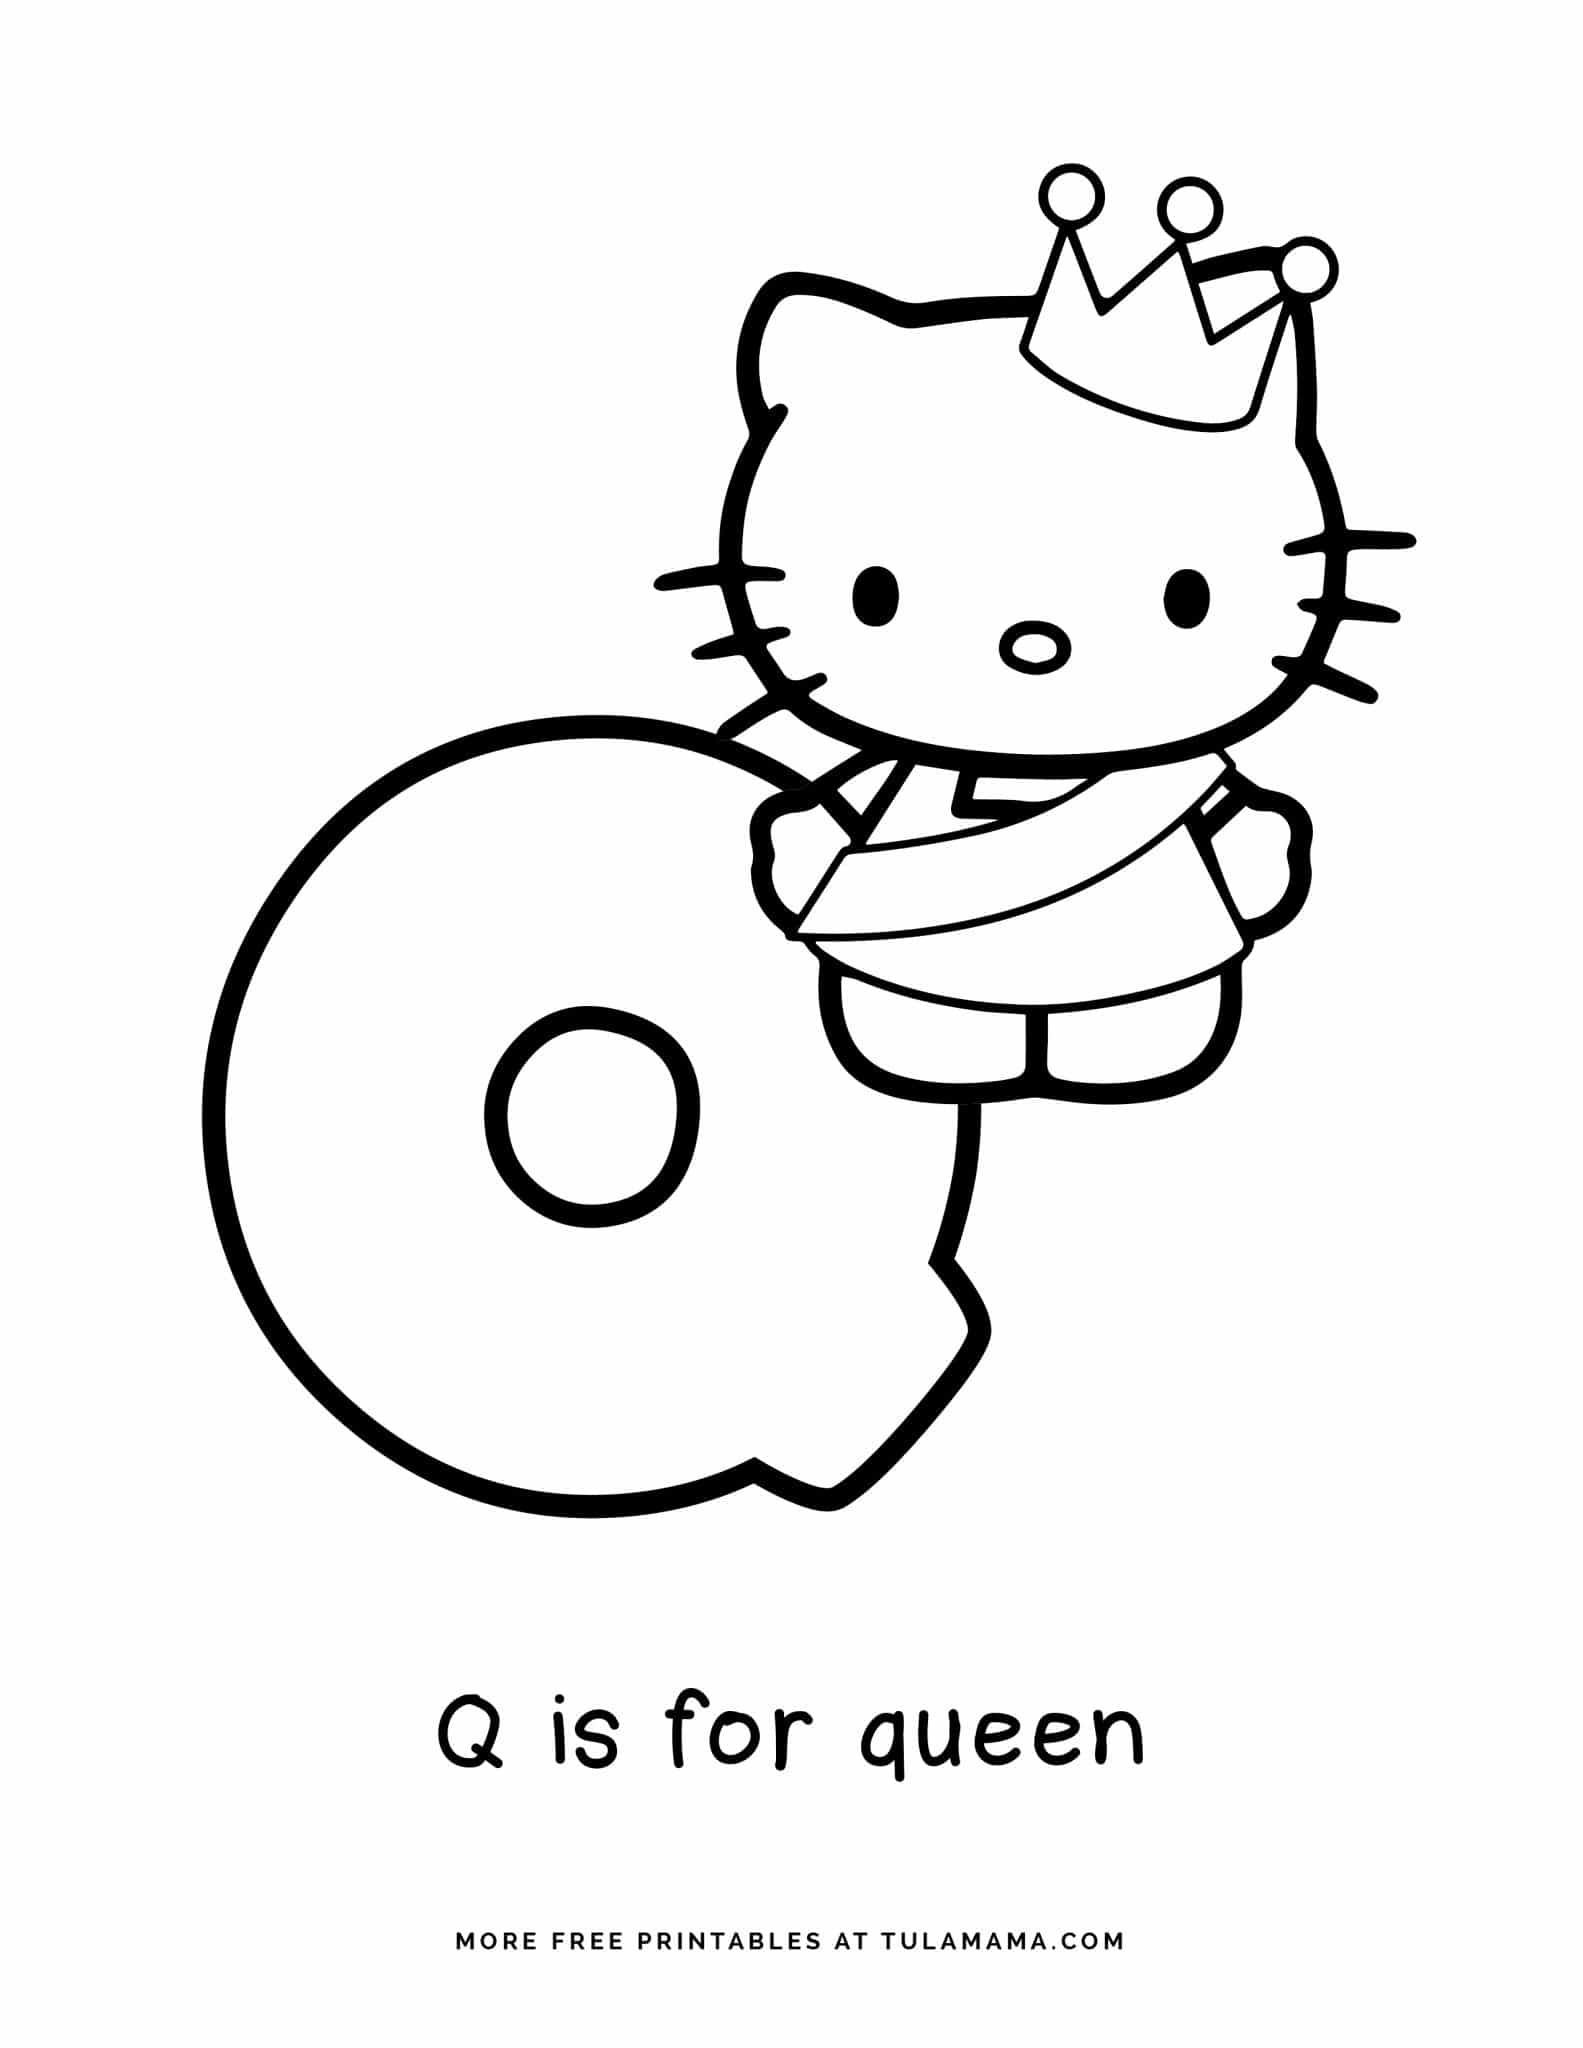 Free Hello Kitty Printables And Abc Coloring Pages In 2021 Abc Coloring Pages Hello Kitty Printables Abc Coloring